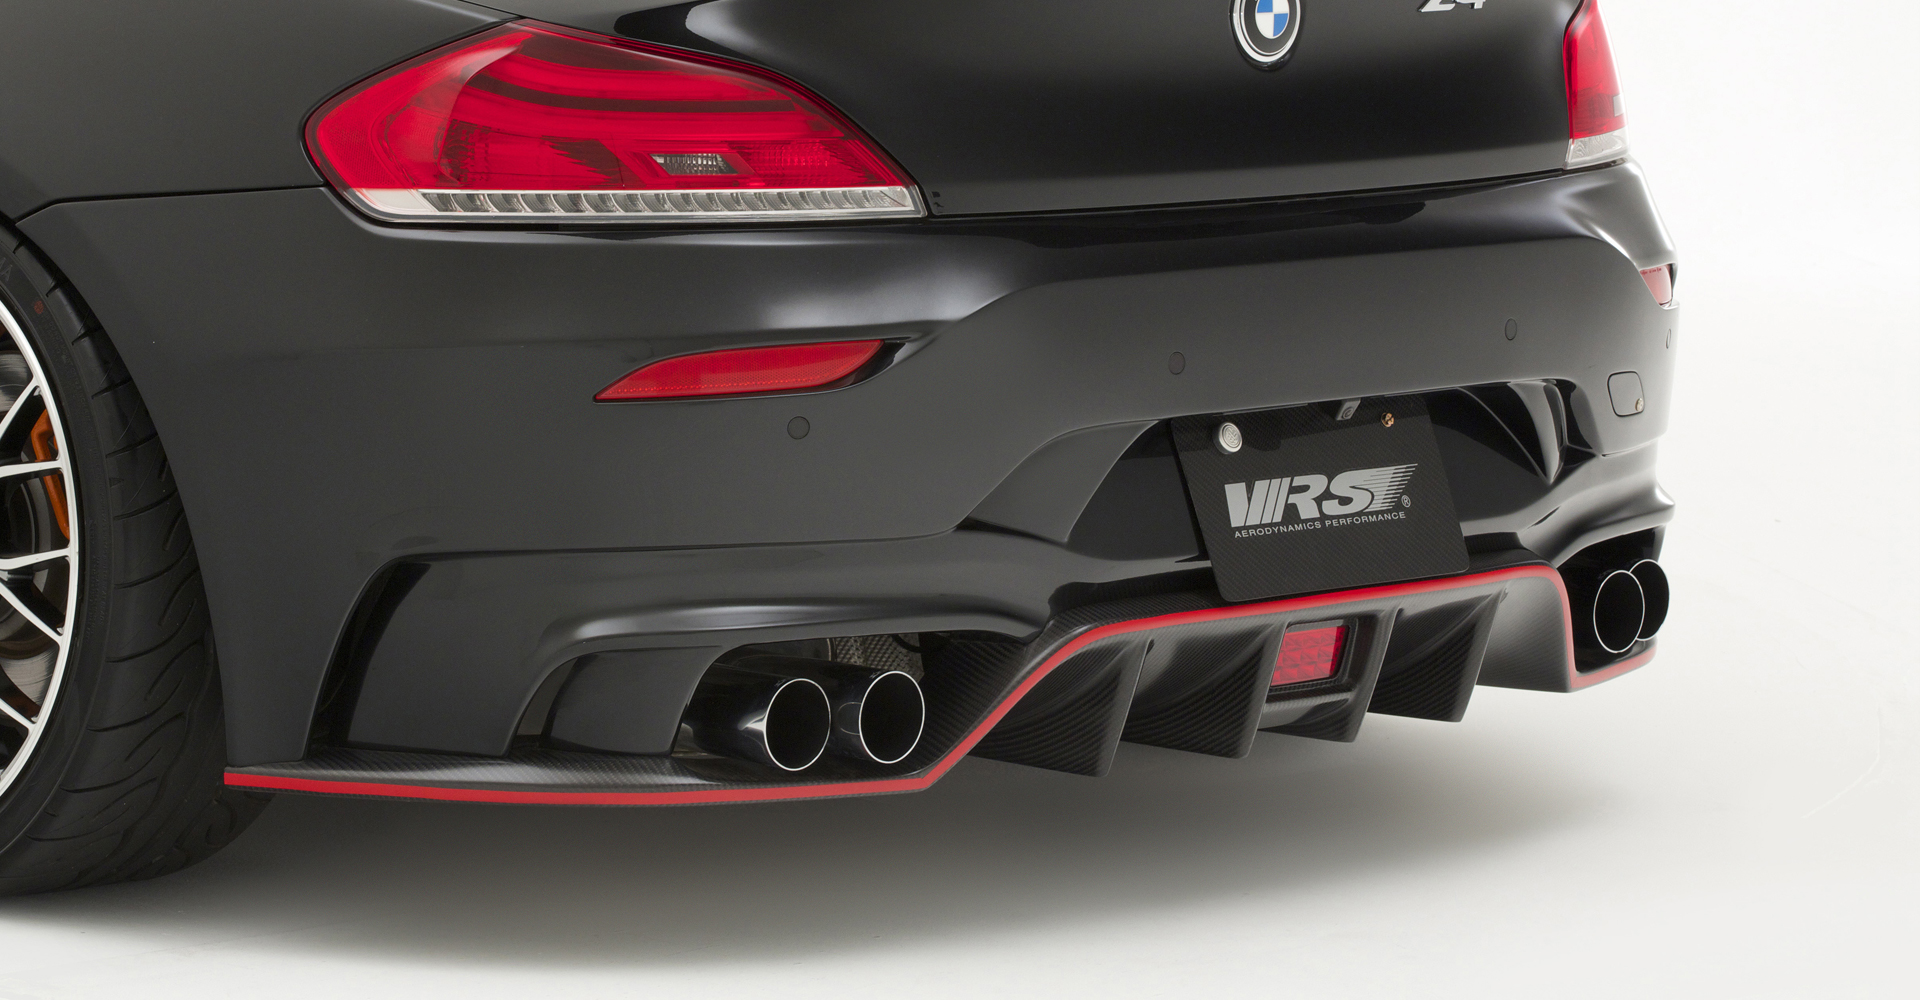 Vrs Bmw E85 86 Z4m Rear Bumper